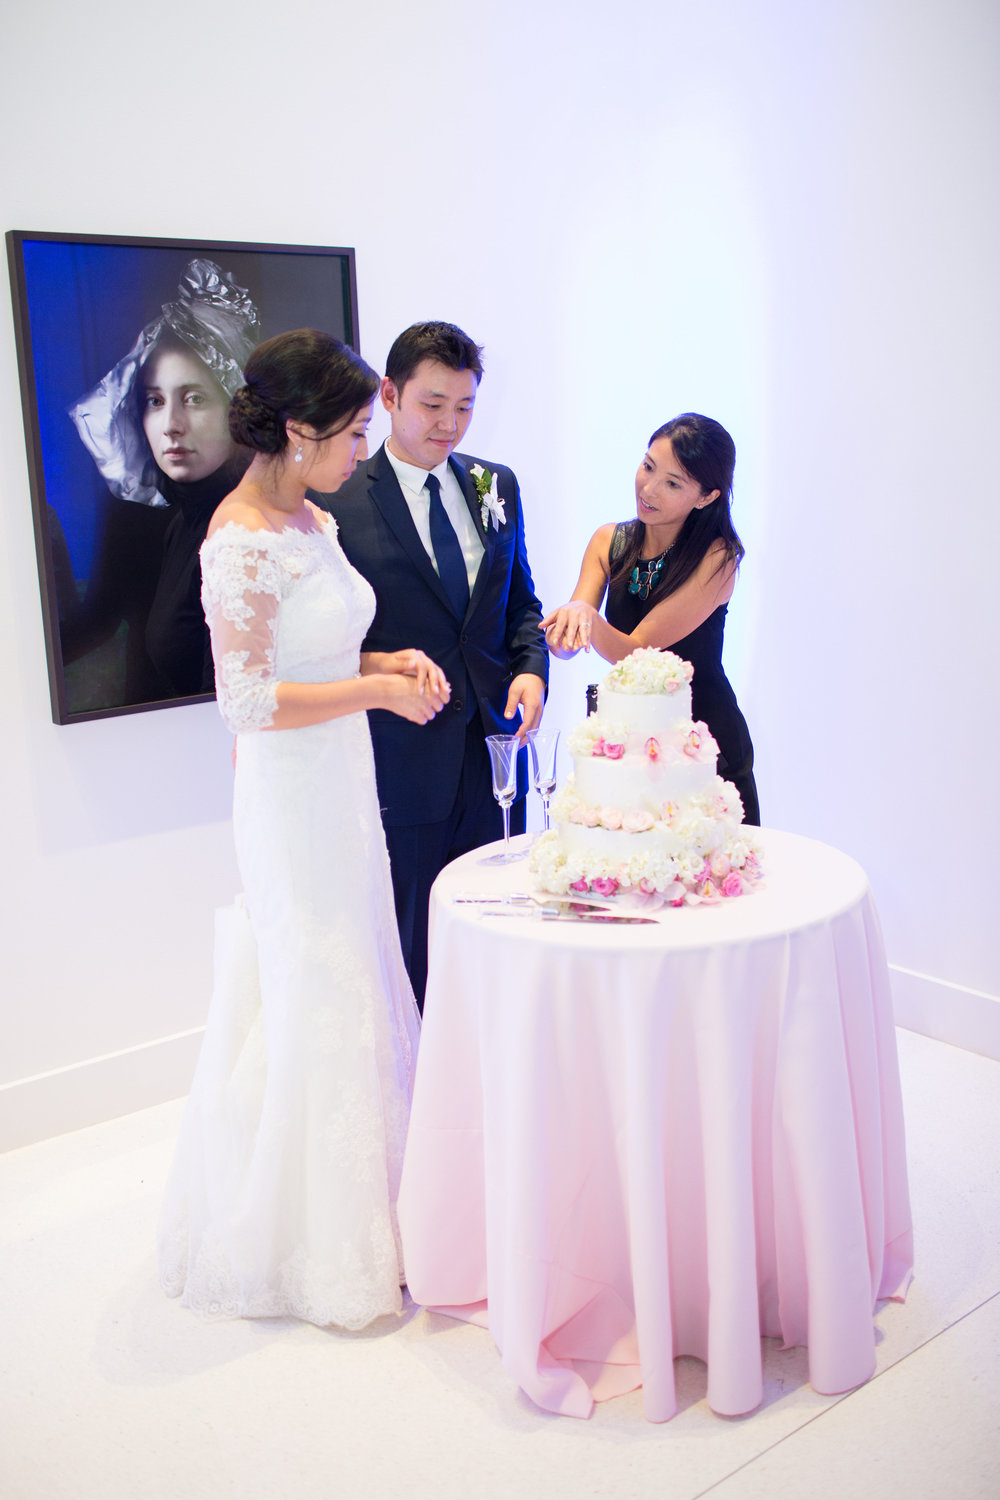 A sneak peek behind the scenes, here's Sonya teaching the Bride and Groom how to cut the cake so that the Photographer can get the best photos for the special moment. Photo by  France Photographers